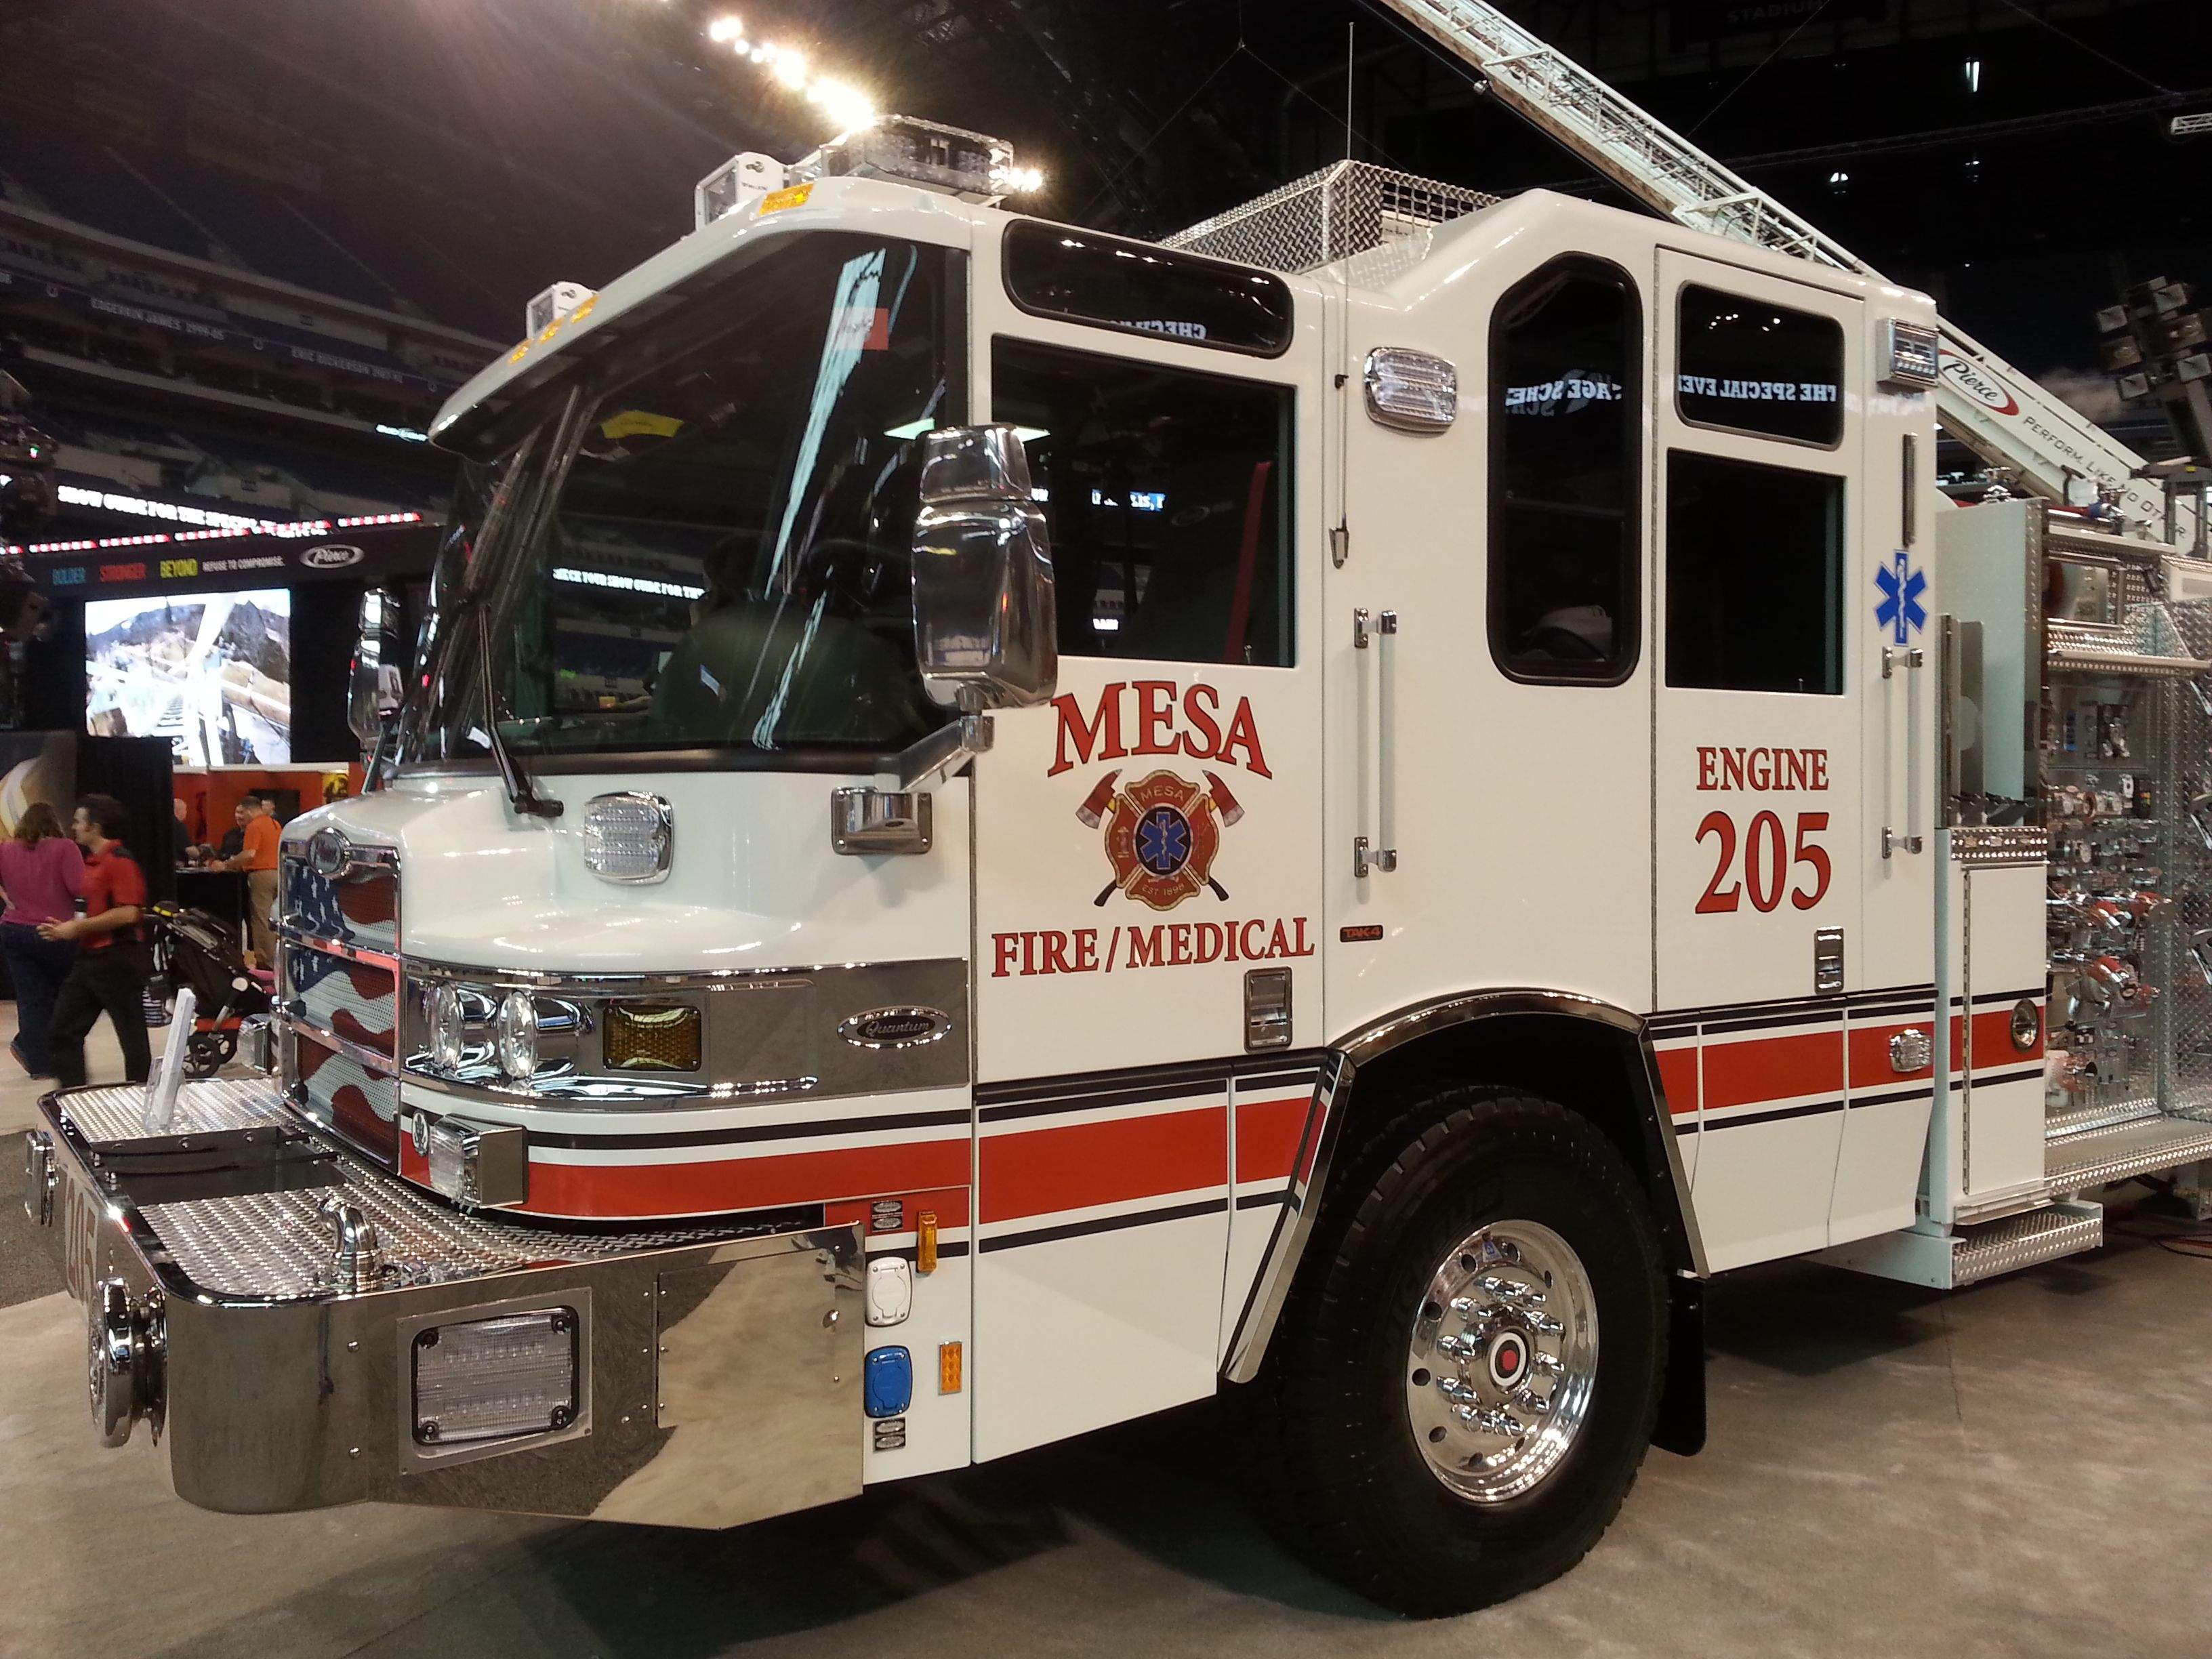 Beautiful truck specially designed by the apparatus committee at mesa fd has a great setcom intercom system inside